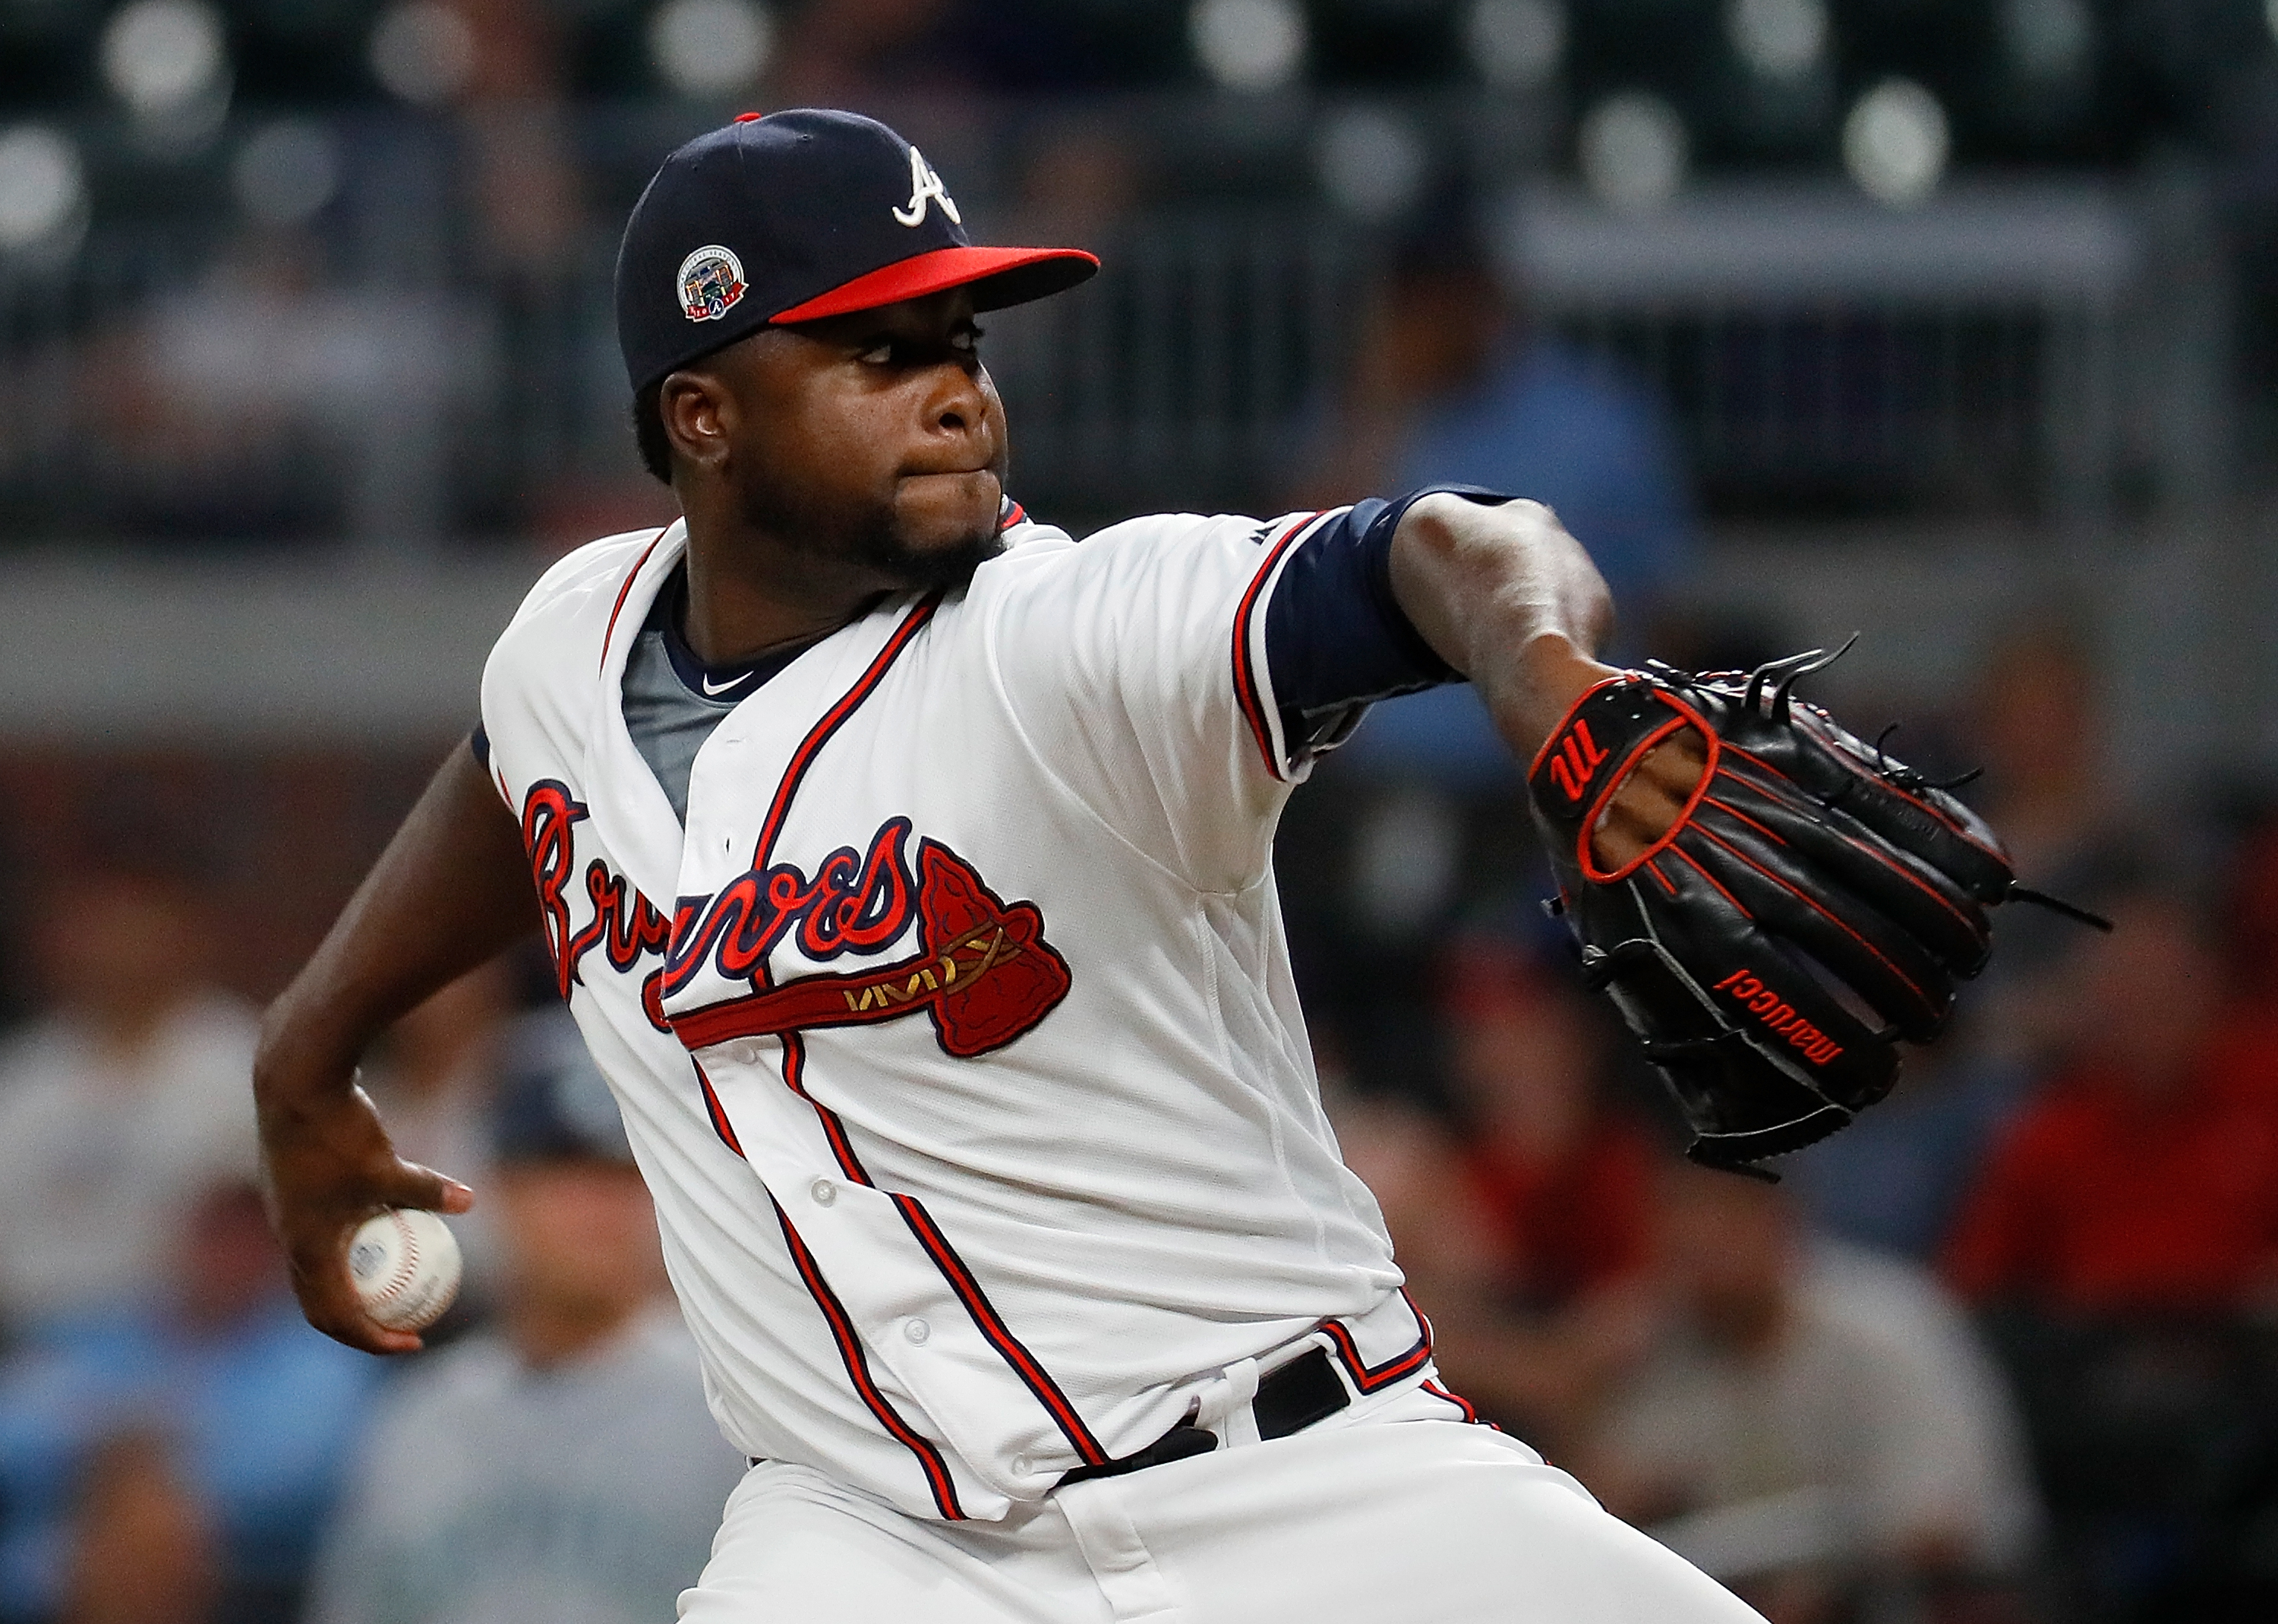 Atlanta Braves need changes to contend in 2018, here's one